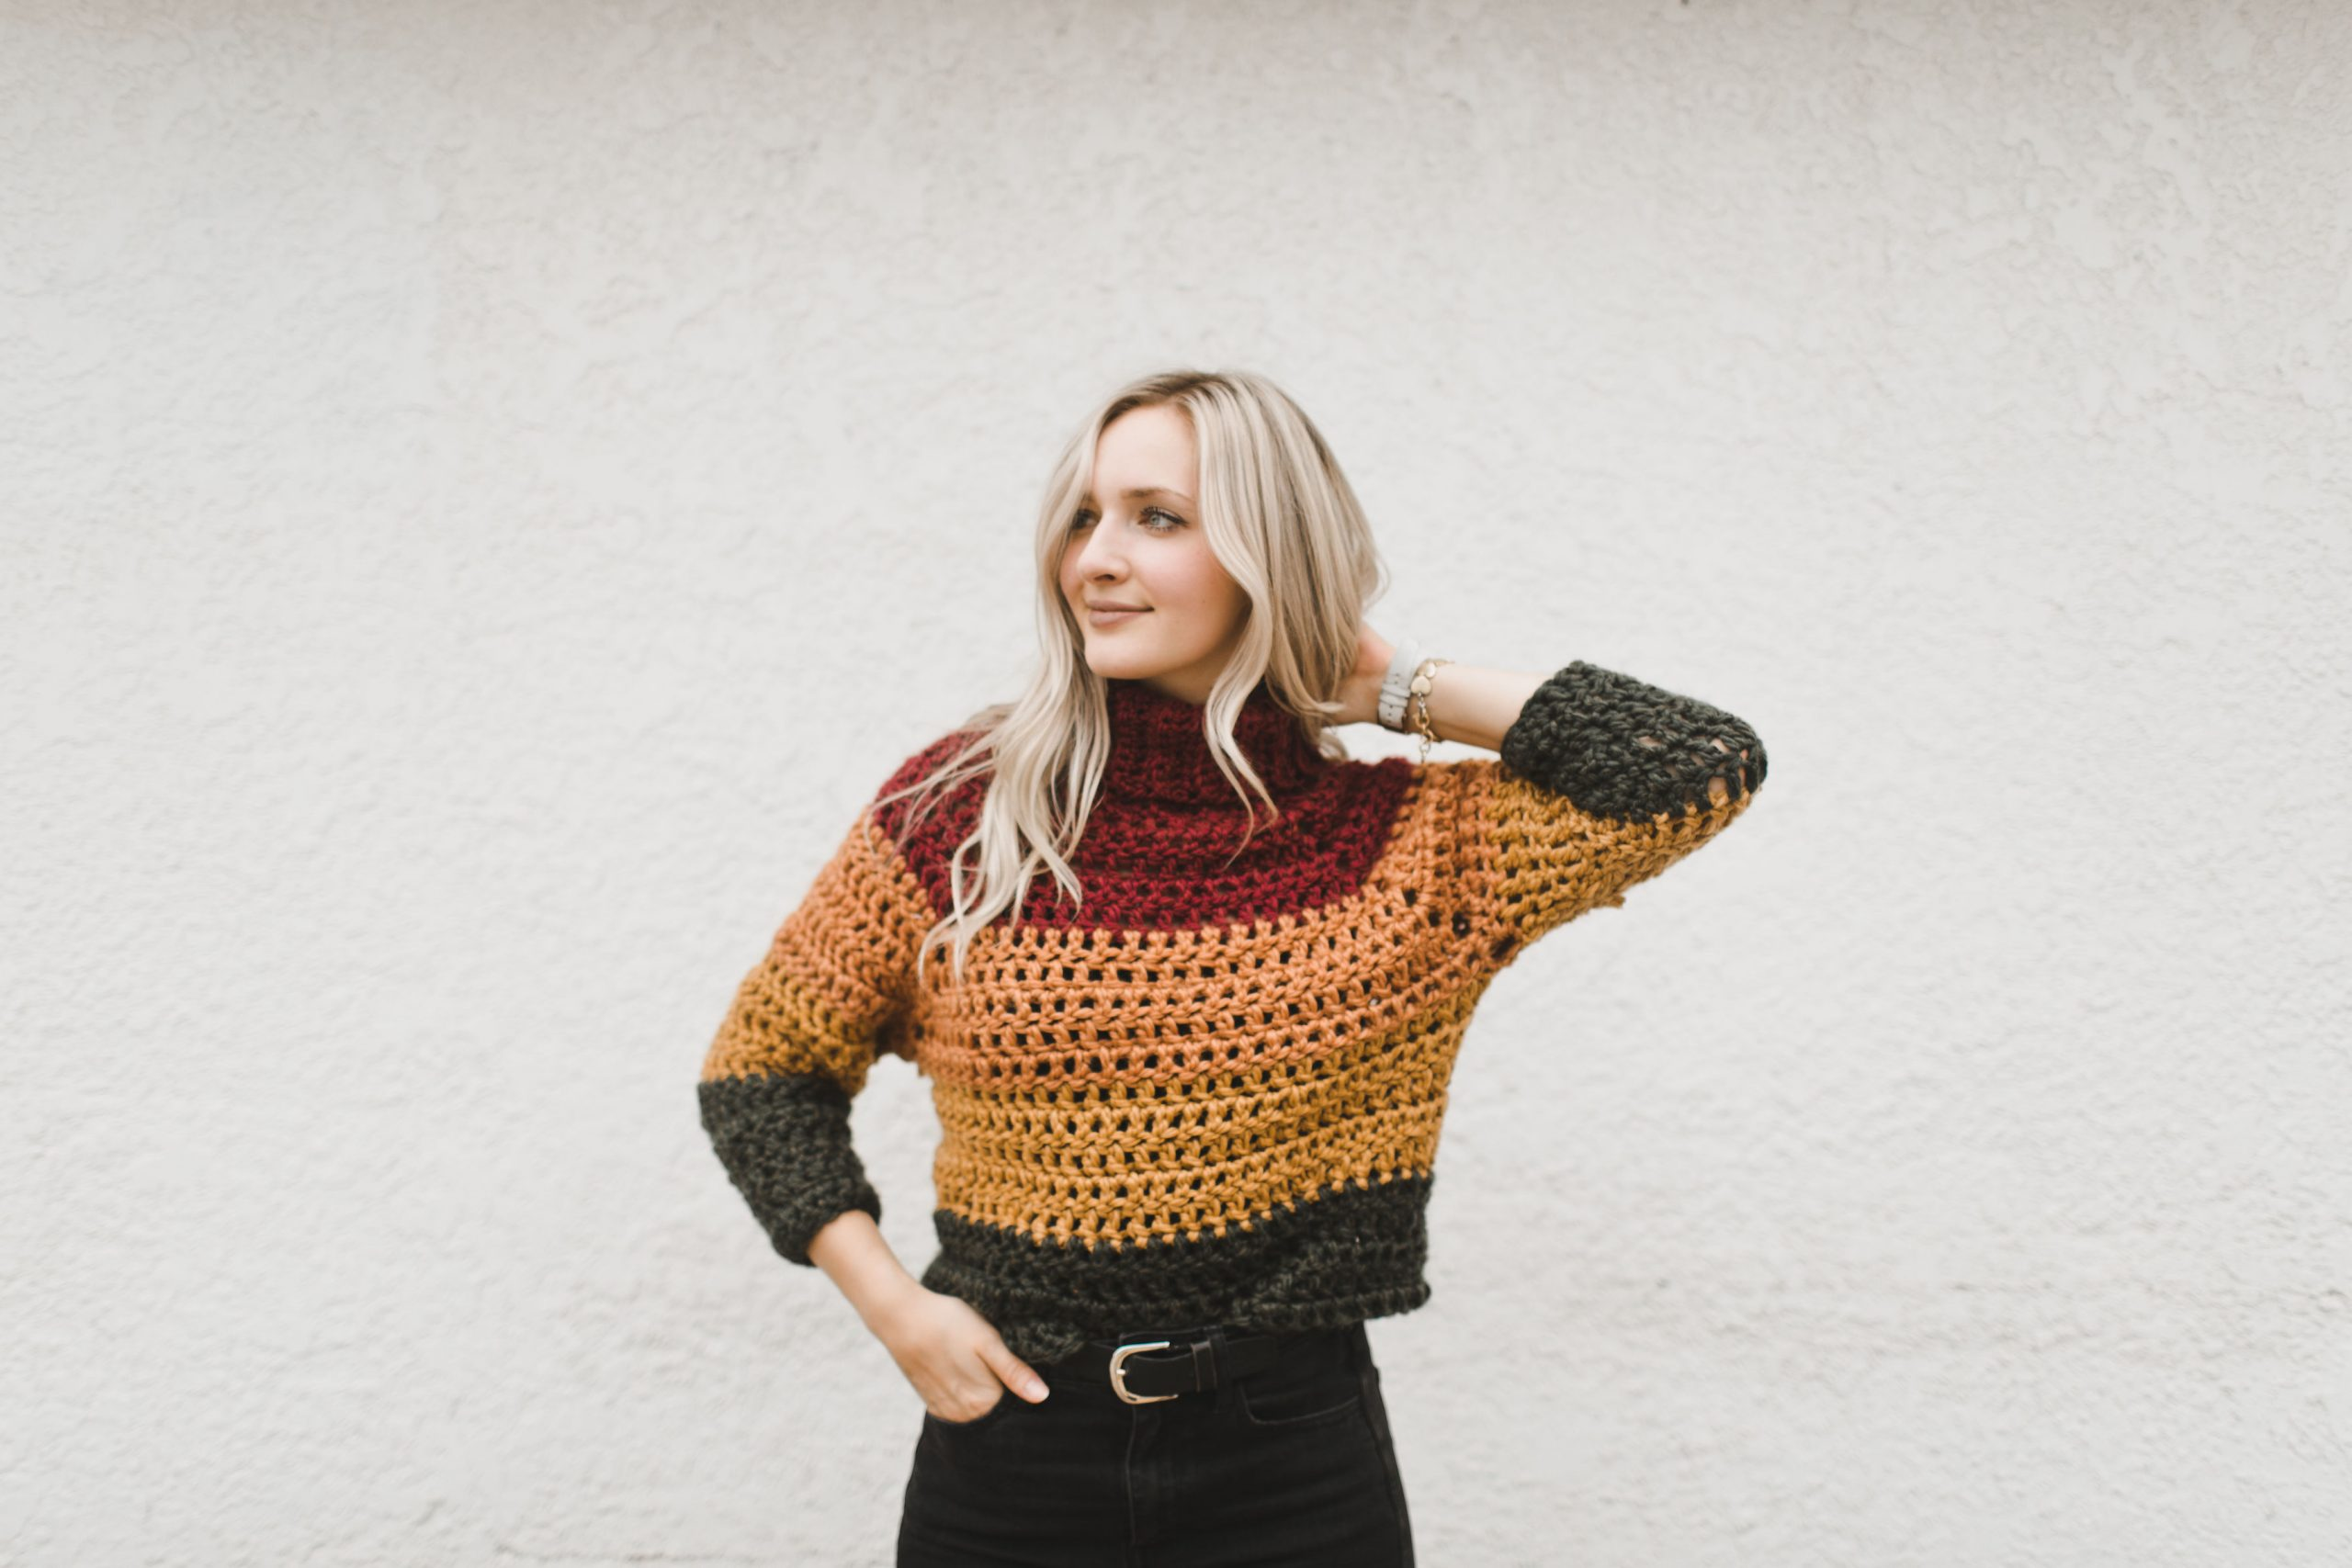 AUTUMN Harvest Stripes Throw Afghan//Crochet Pattern INSTRUCTIONS ONLY